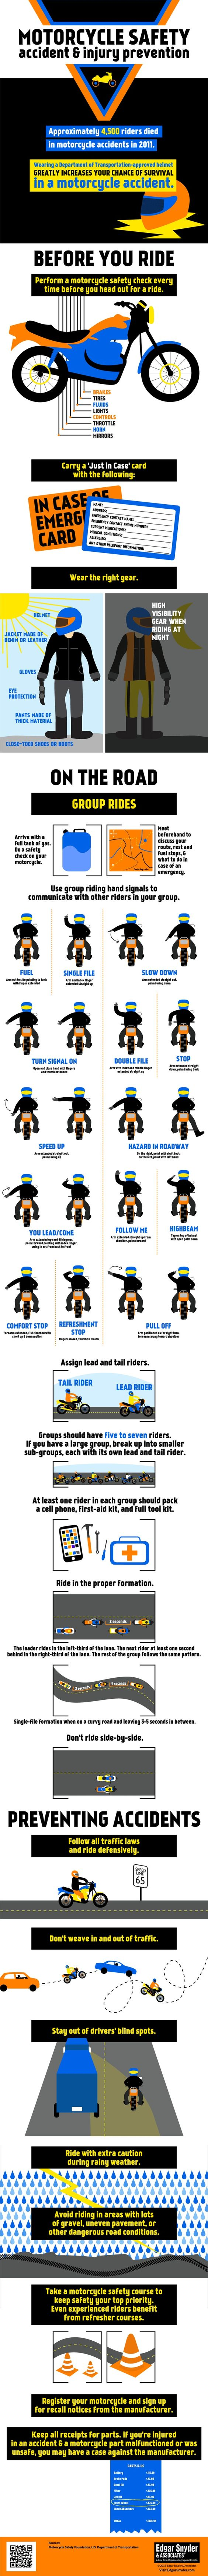 """May is Motorcycle Safety Awareness Month. Always remember to perform a motorcycle safety check before you ride, carry a """"just in case"""" card, wear the right gear, and stay safe. Great information for all motorists to remember, not just motorcyclists!"""